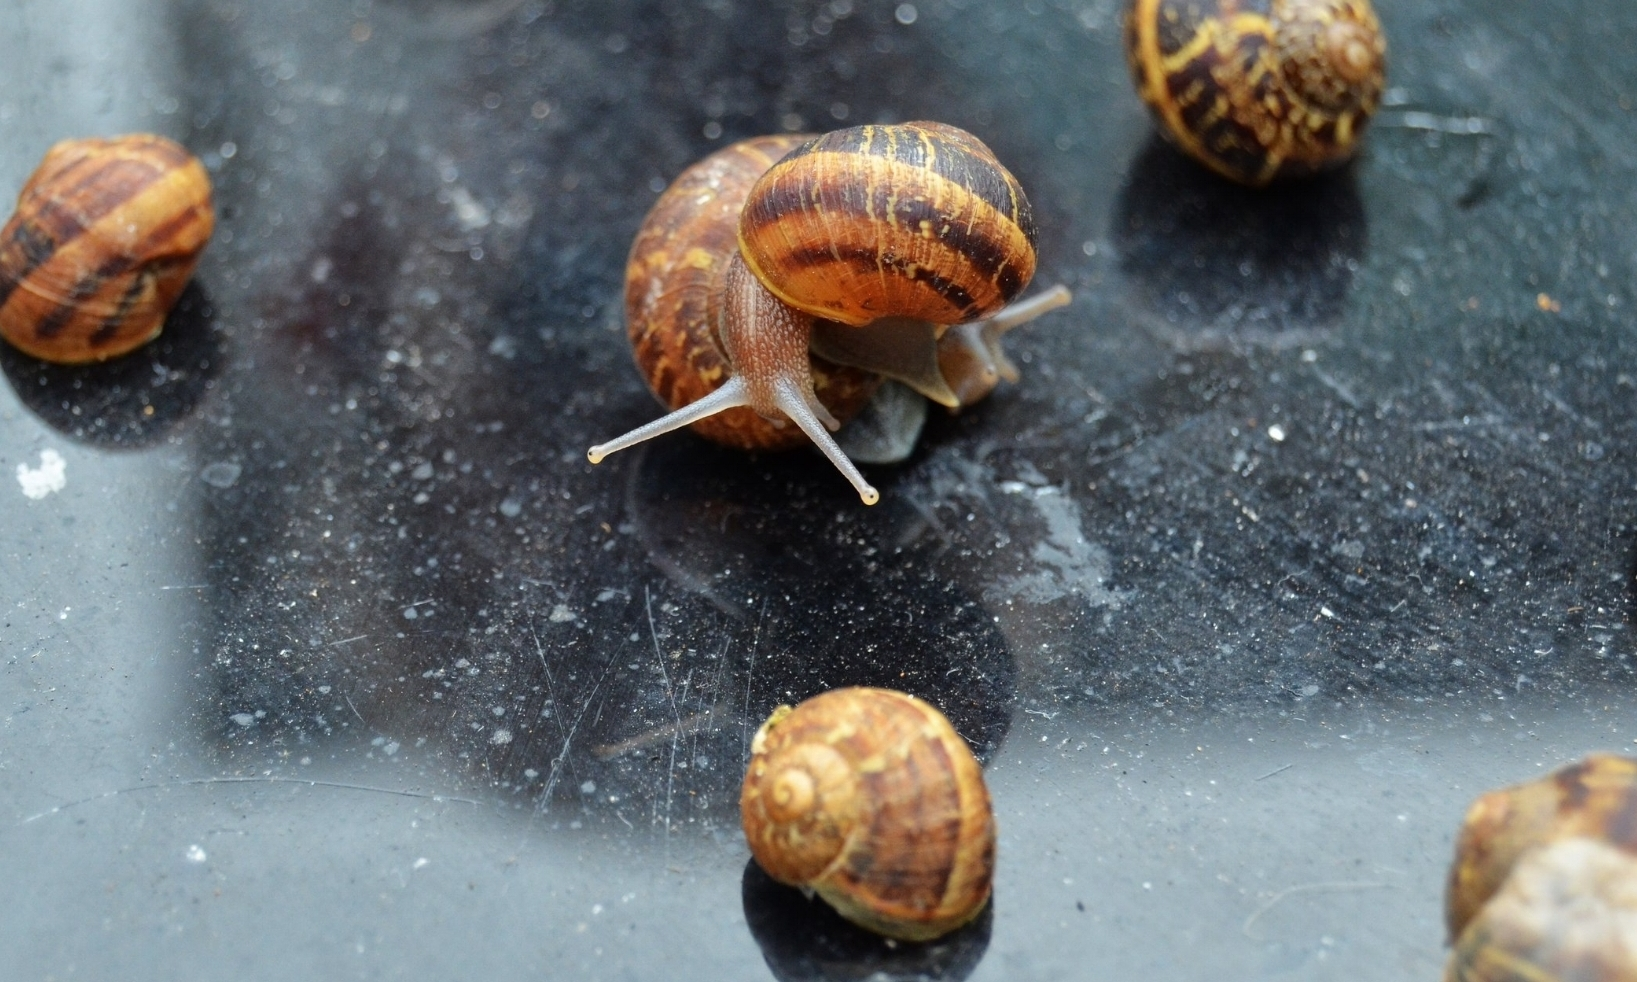 Gene Pensiero - Available on Unsplash.Snails are creatures that very much symbolise degrowth and its visions – including slowing down, having an informed sense of direction and living differently.